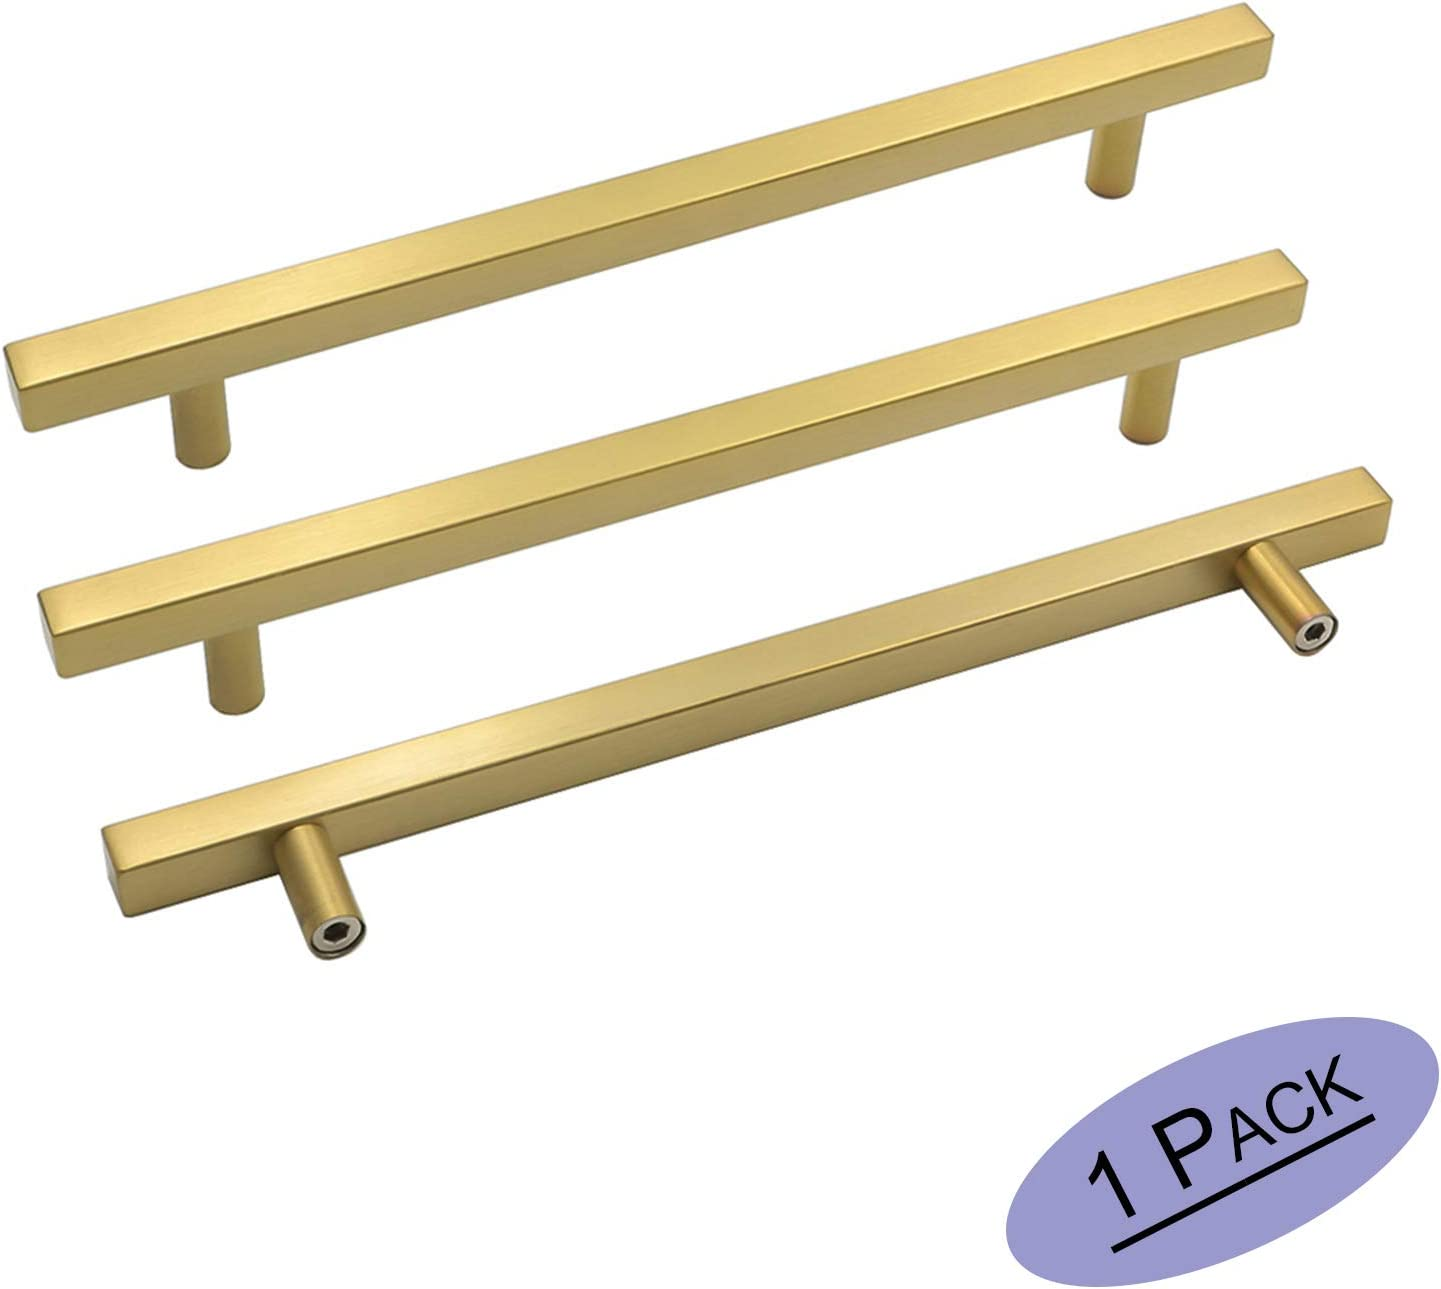 Square T Bar Kitchen Cabinet Handles Stainless Steel Cupboard Drawer Pulls Knobs